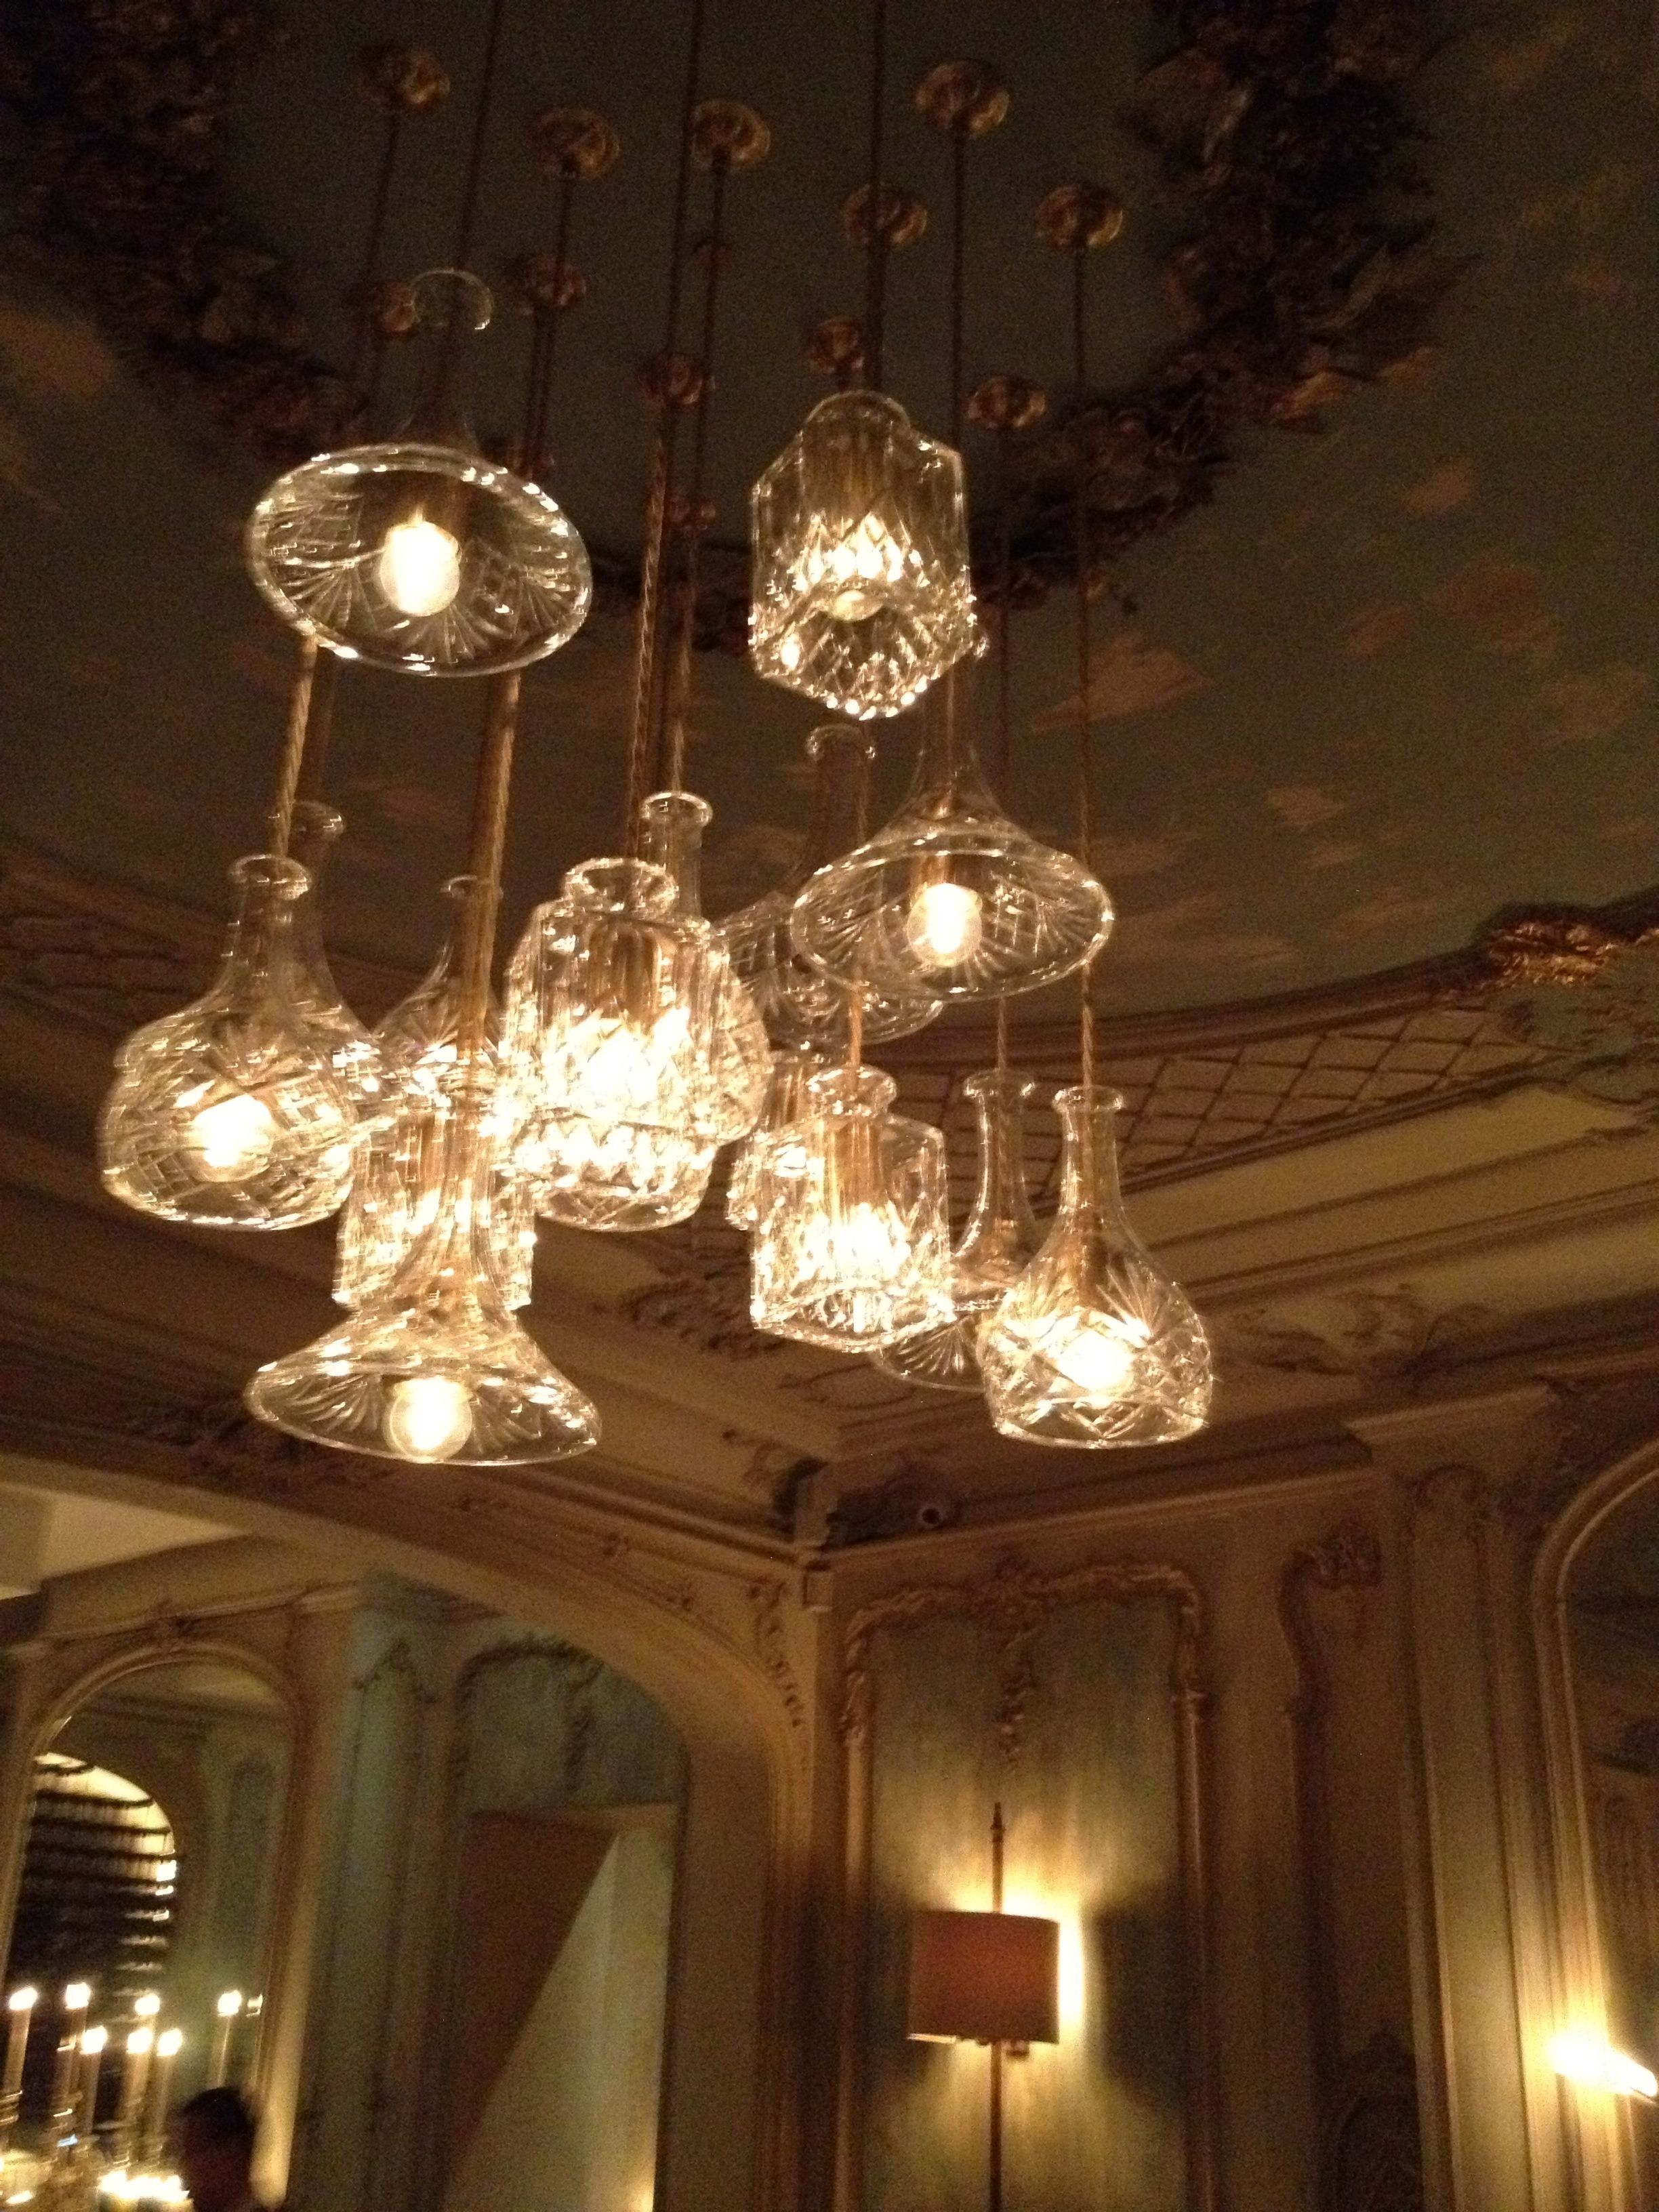 Take A Look At These Chandeliers And Take Some Notes